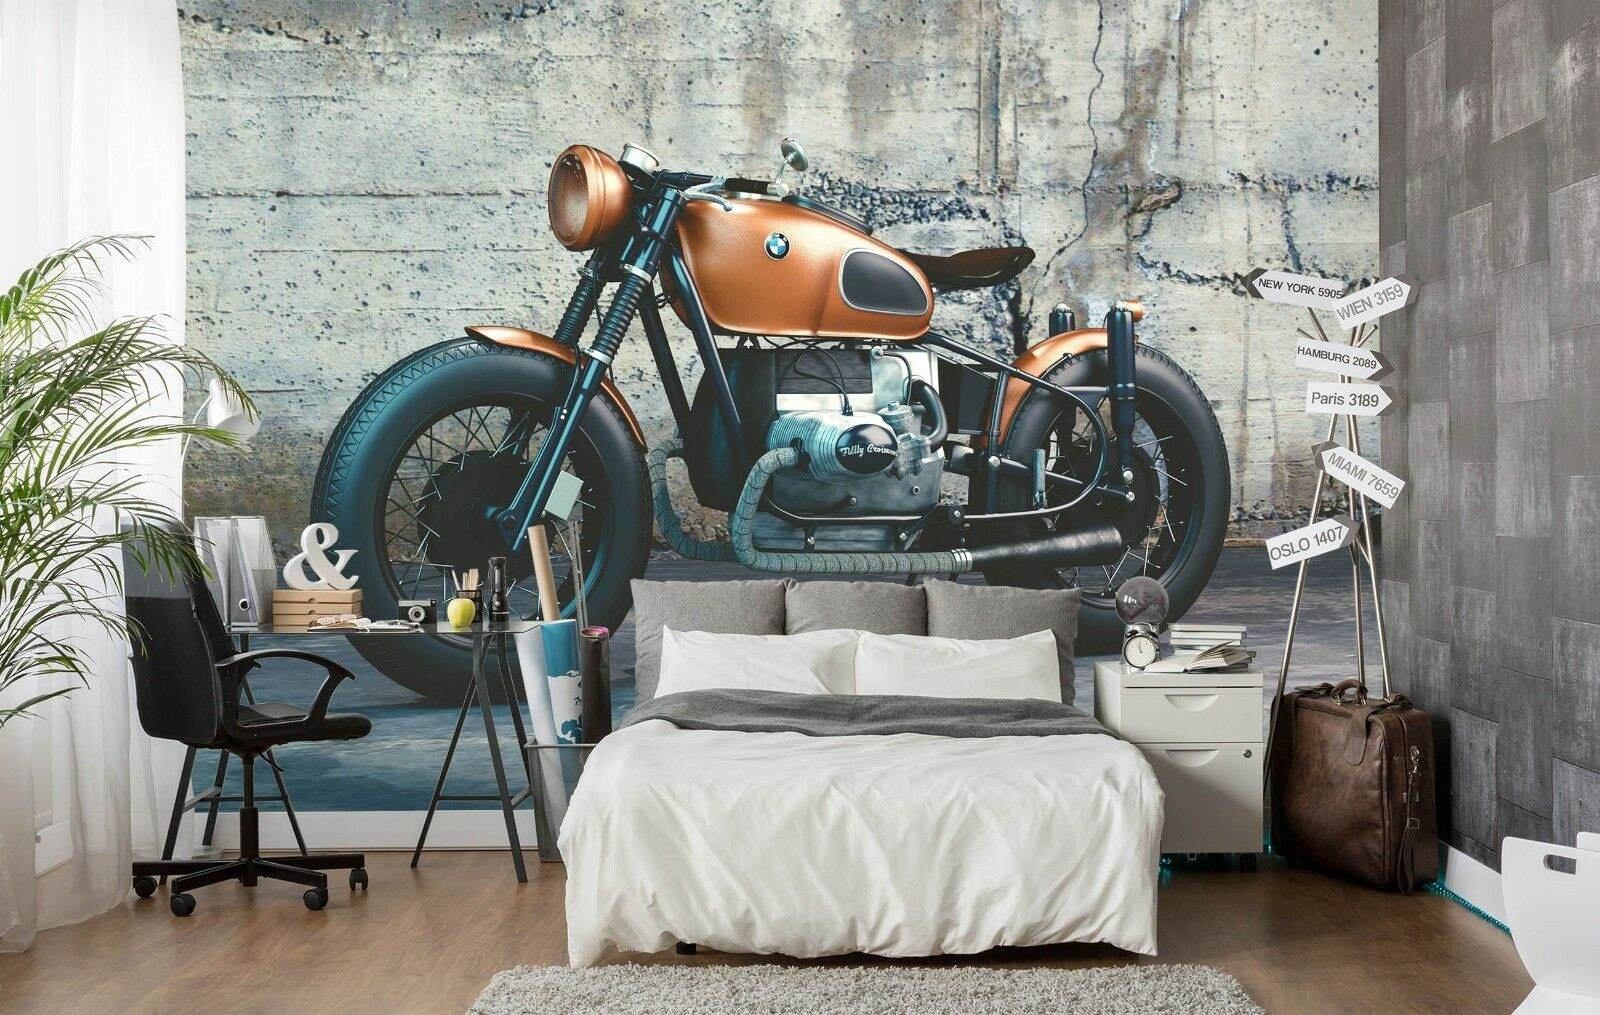 3D Motorcycle 952 Wall Paper Exclusive MXY Wallpaper Mural Decal Indoor Wall AJ